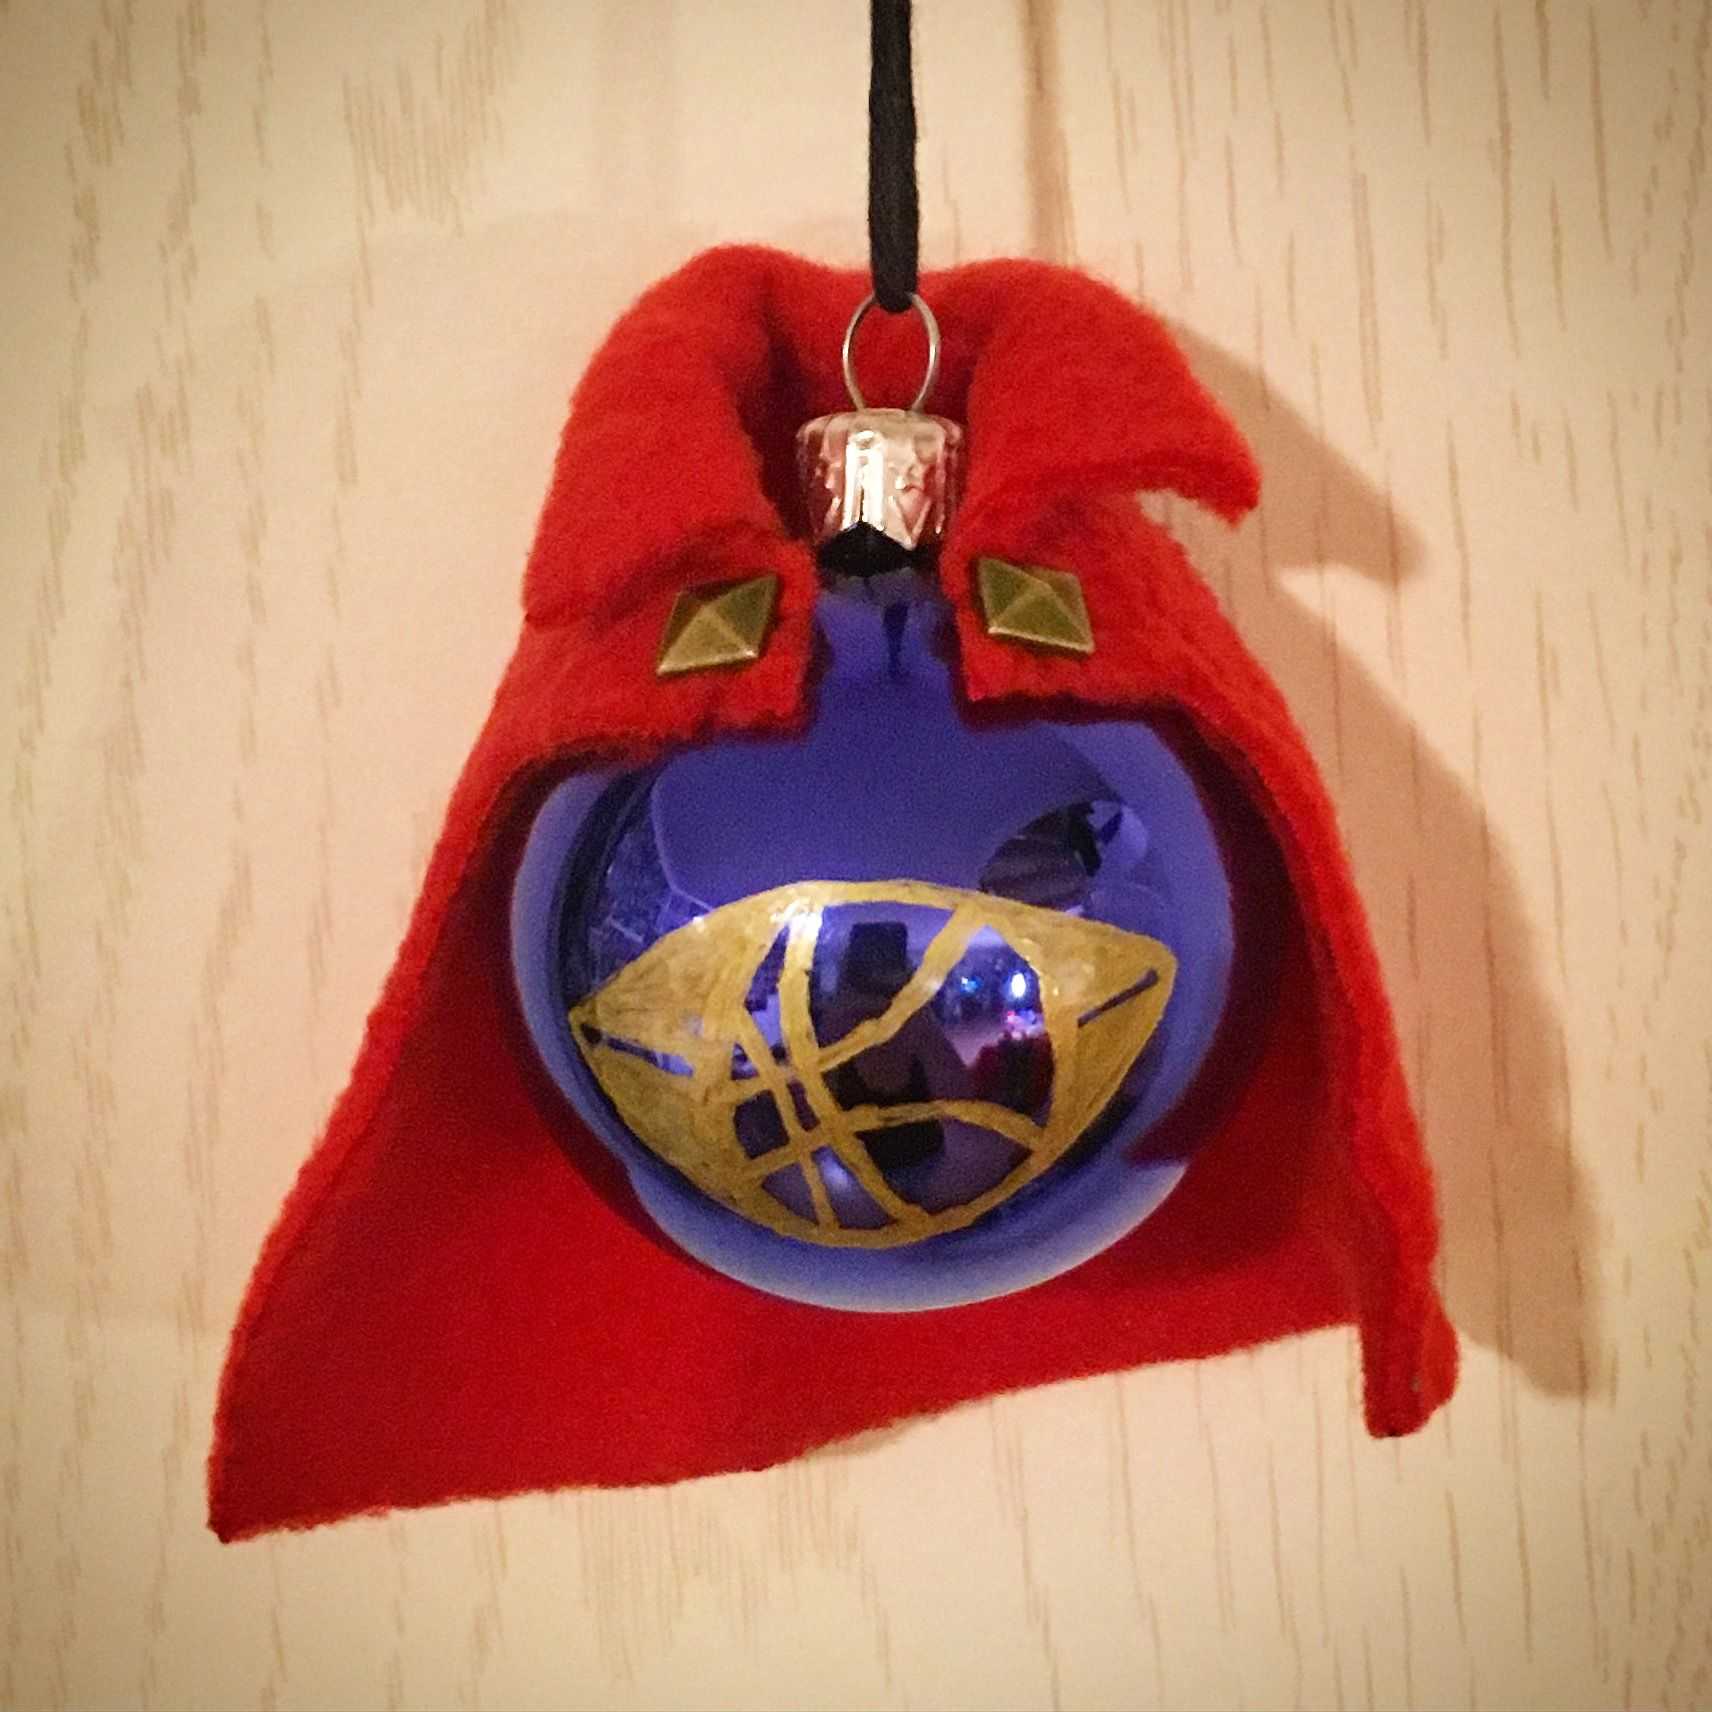 Doctor Strange, Stephen Strange, Christmas, Ornament, Handmade, Bauble, Fanmade, Marvel,